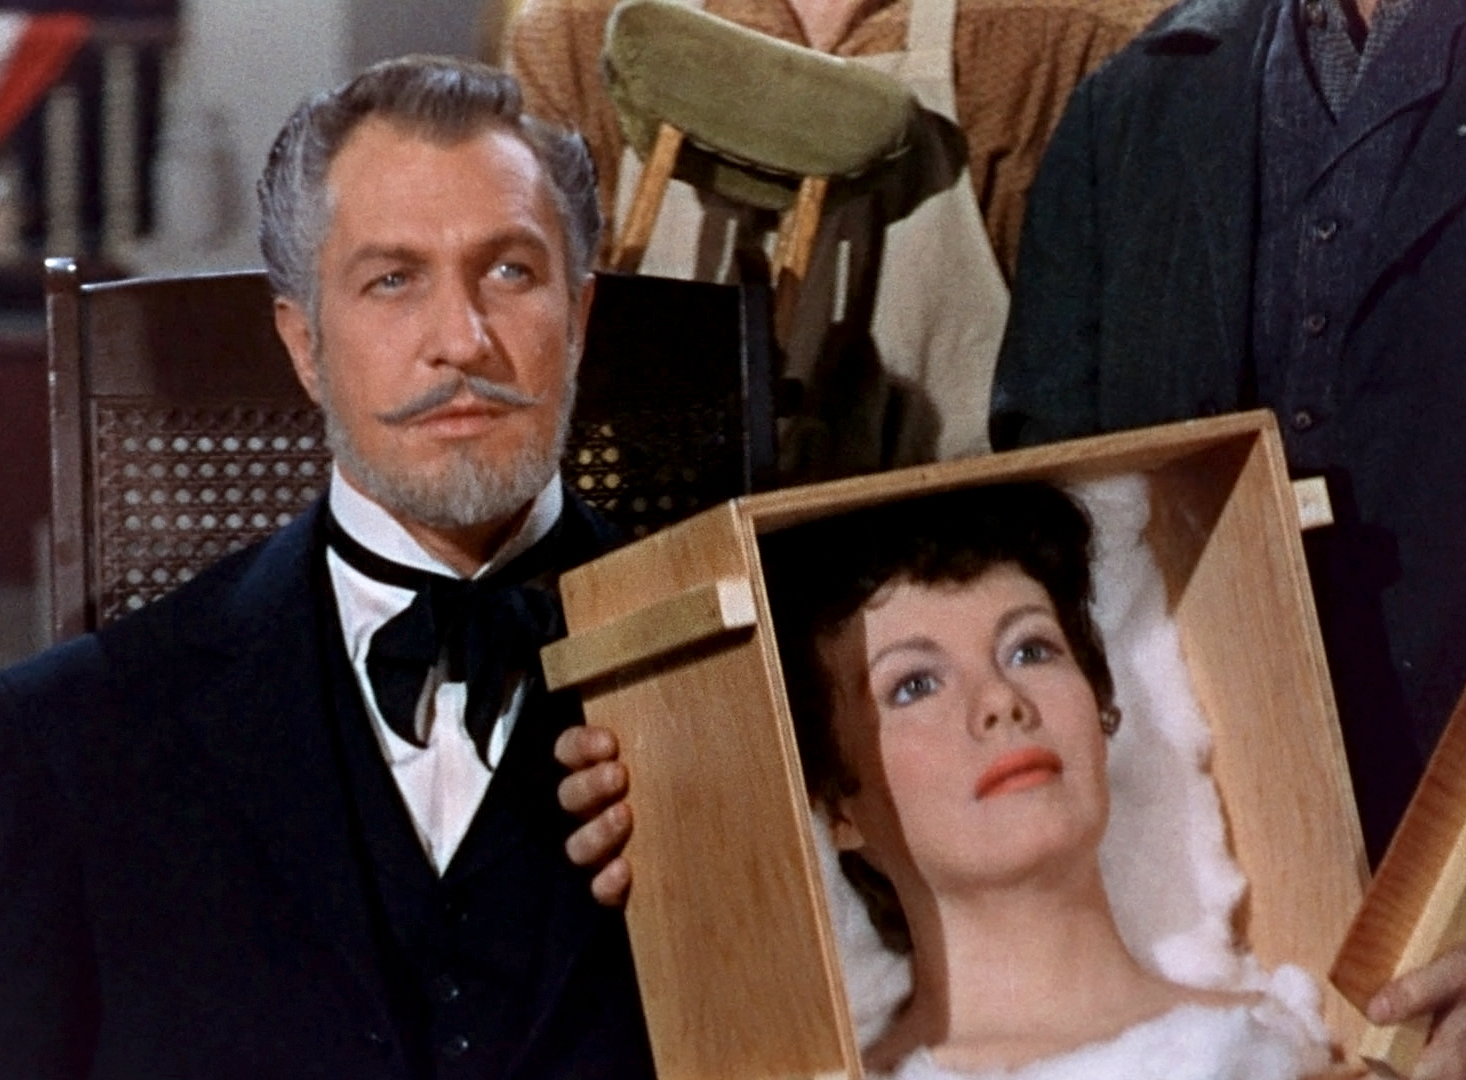 65th Anniversary Of House Of Wax In 3 D On October 13 At The Ahrya Fine Arts In Beverly Hills